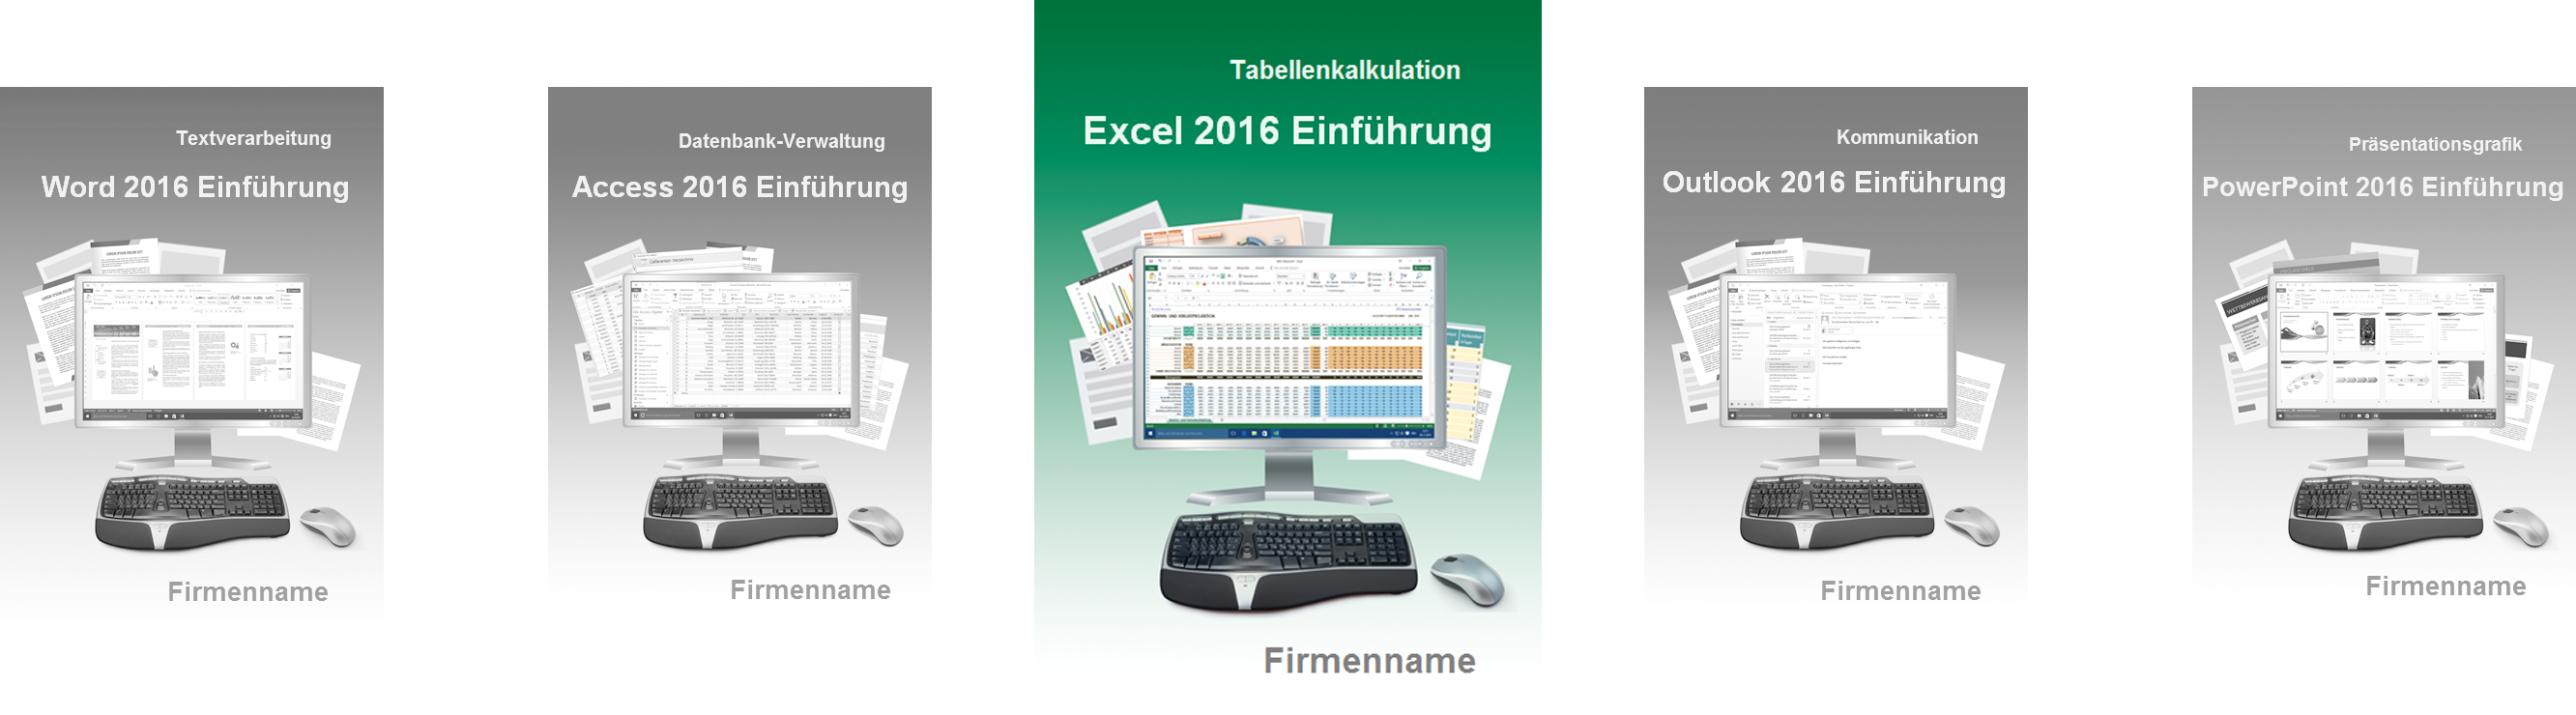 Schulungsmaterial Excel 2016 Slideshow